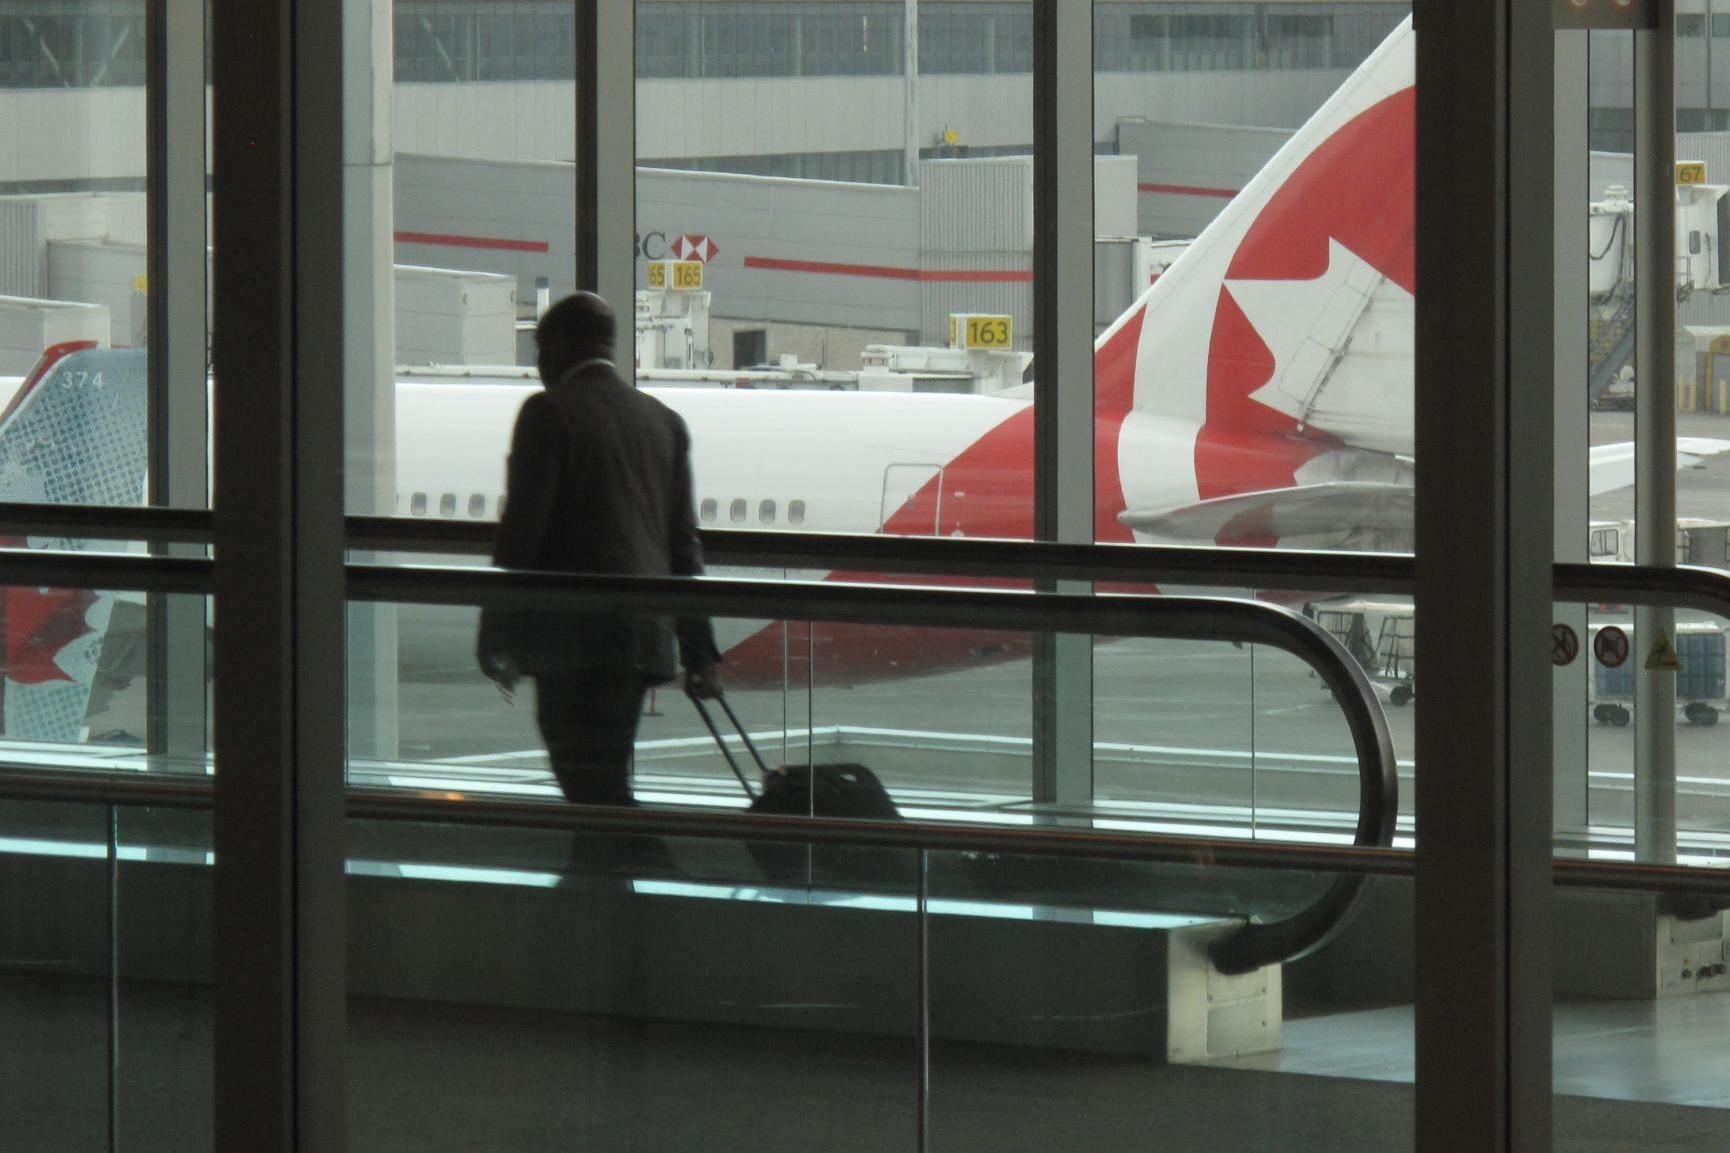 Coronavirus Air Canada Insists On Pre Flight Customer Temperature Checks The Independent The Independent